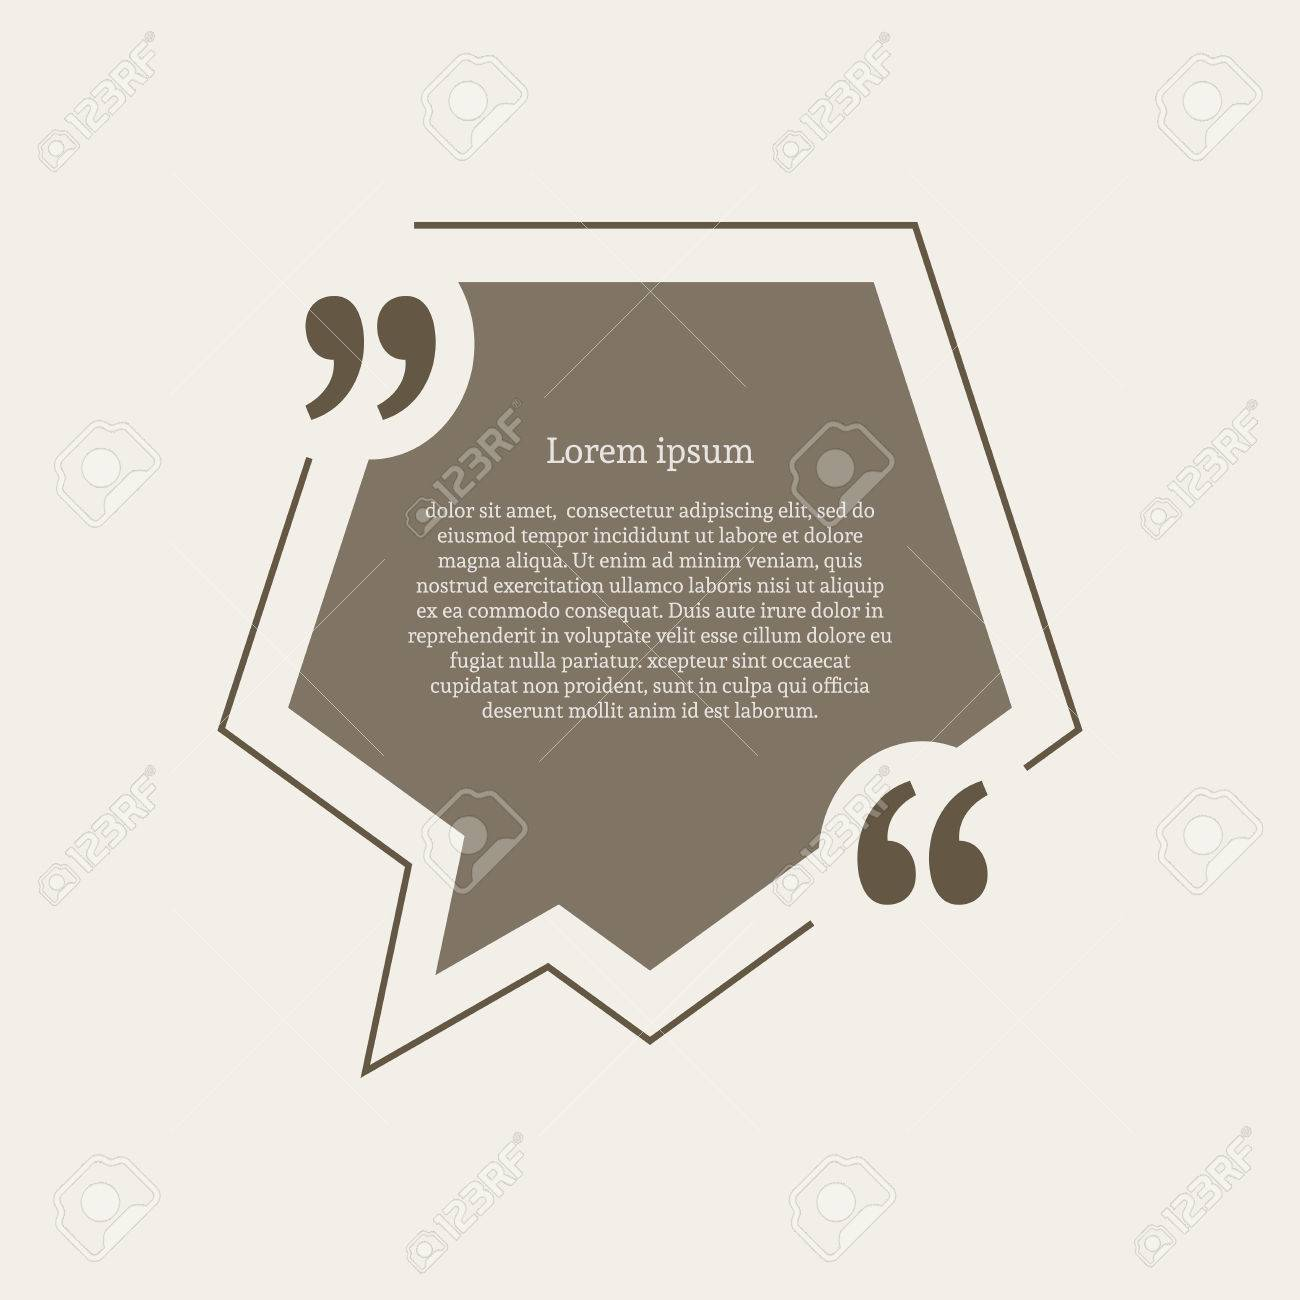 Quotation mark speech bubble empty quote blank citation template quotation mark speech bubble empty quote blank citation template pentagon design element for business reheart Images